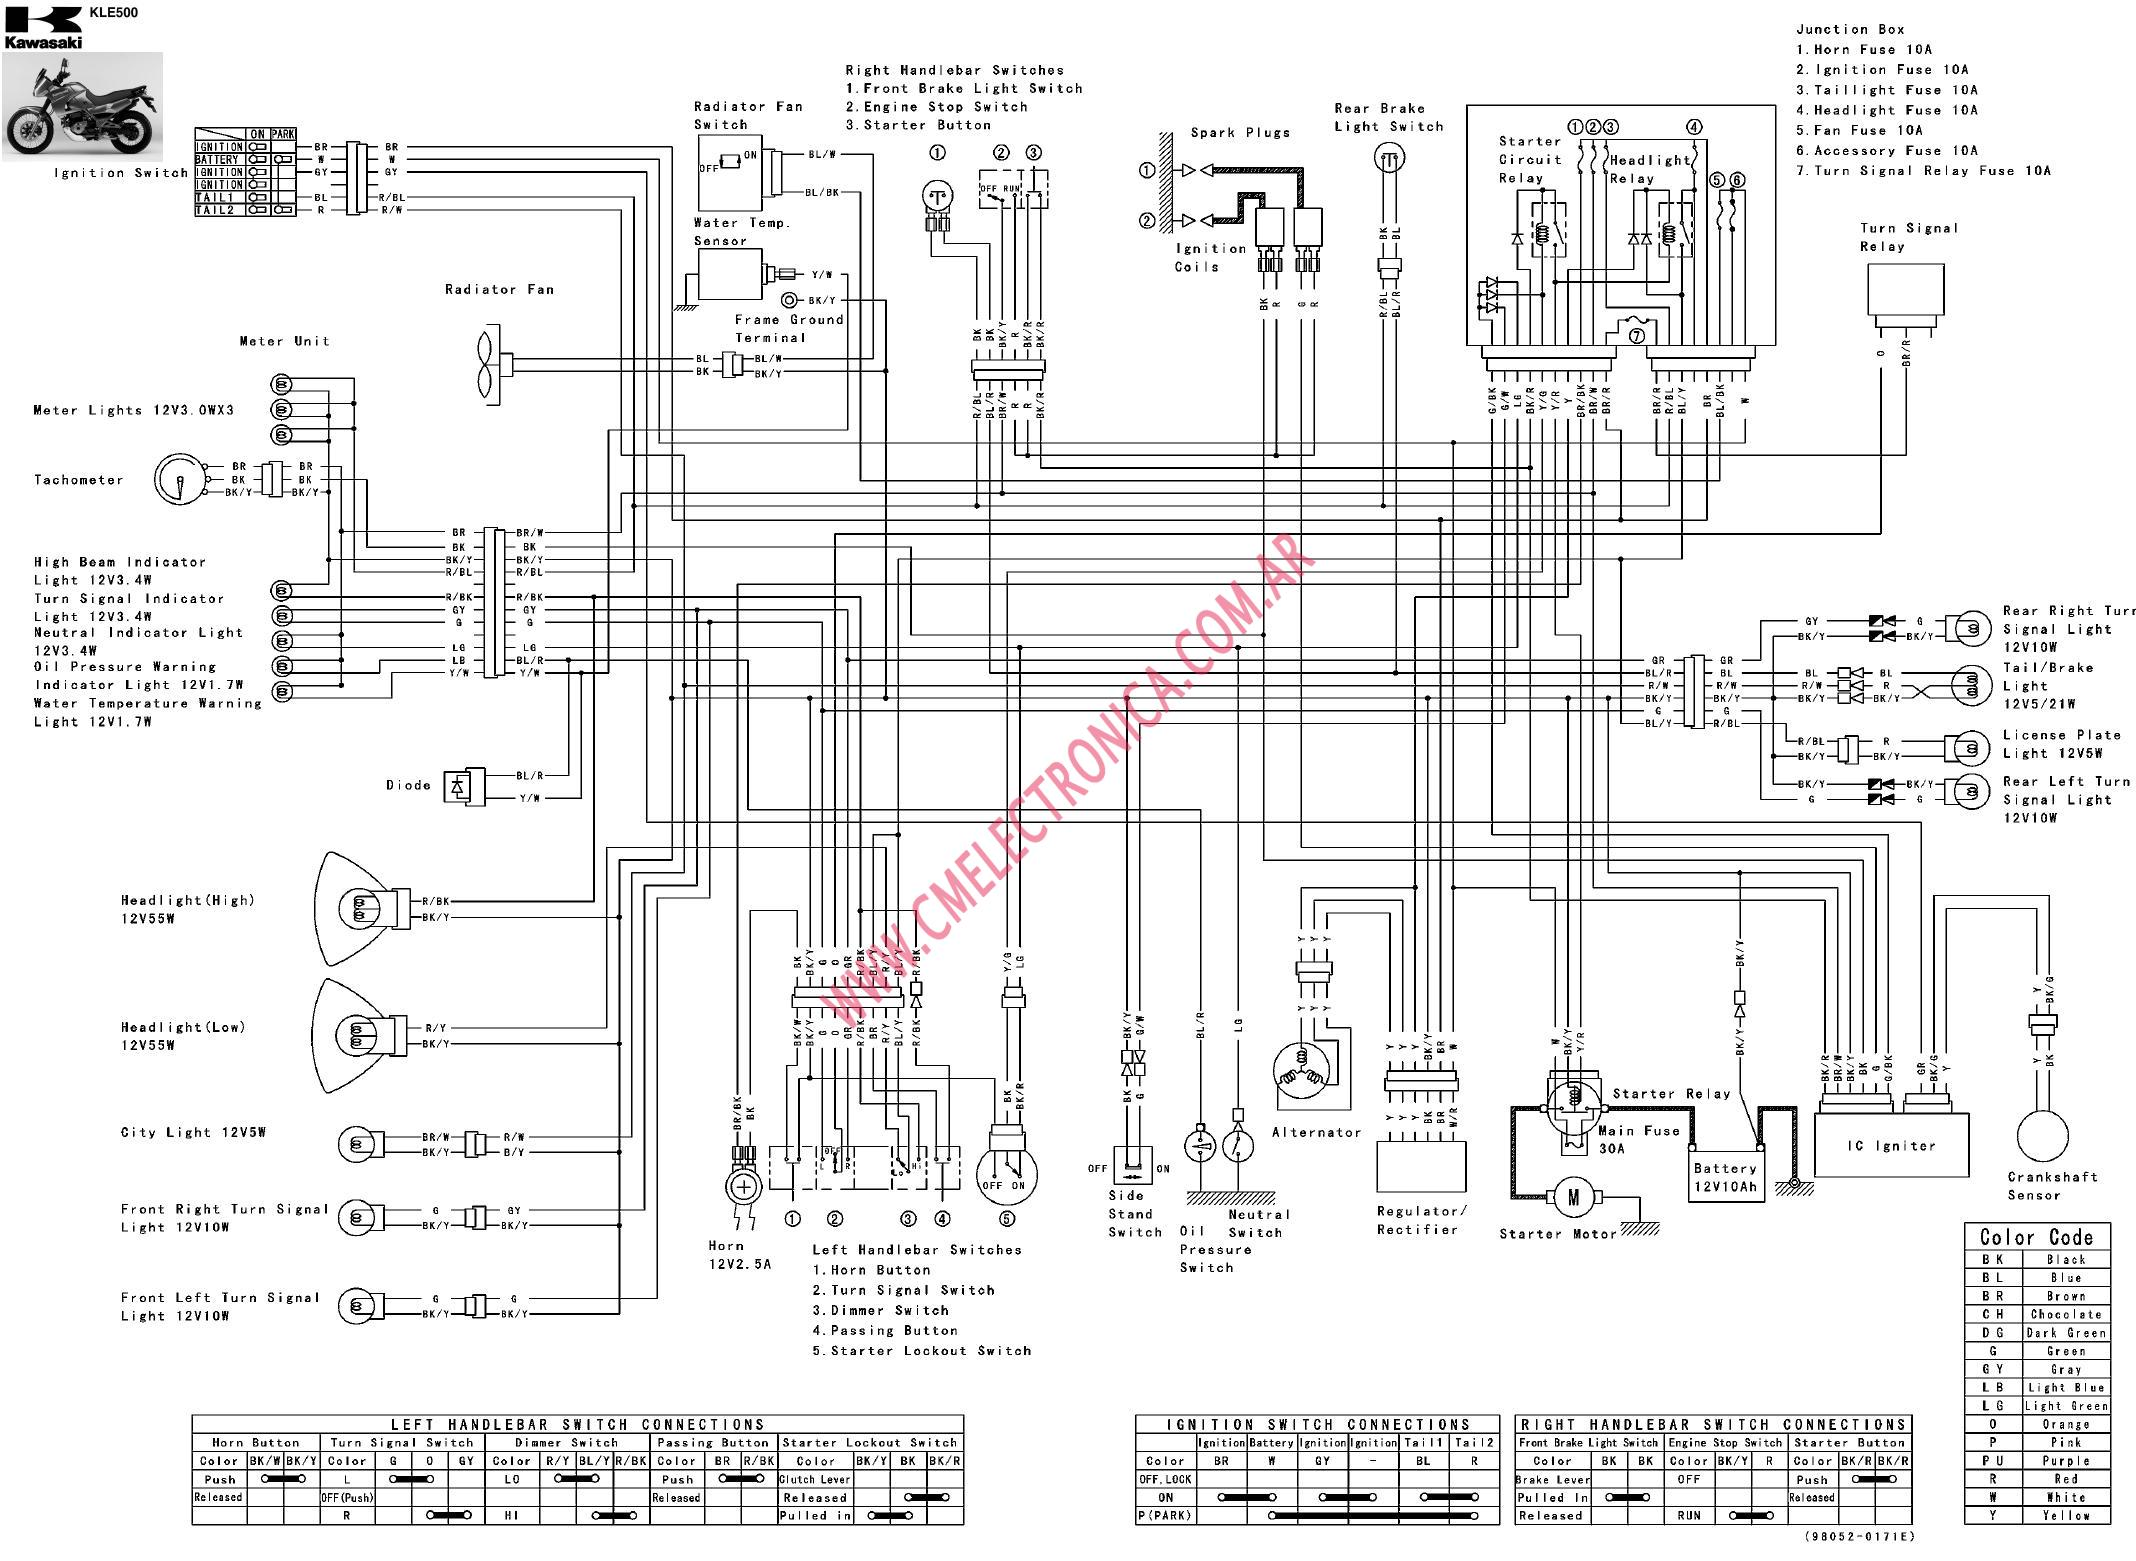 Pin Diagram Of Kawasaki Atv Parts Klf185 A1 Bayou 185